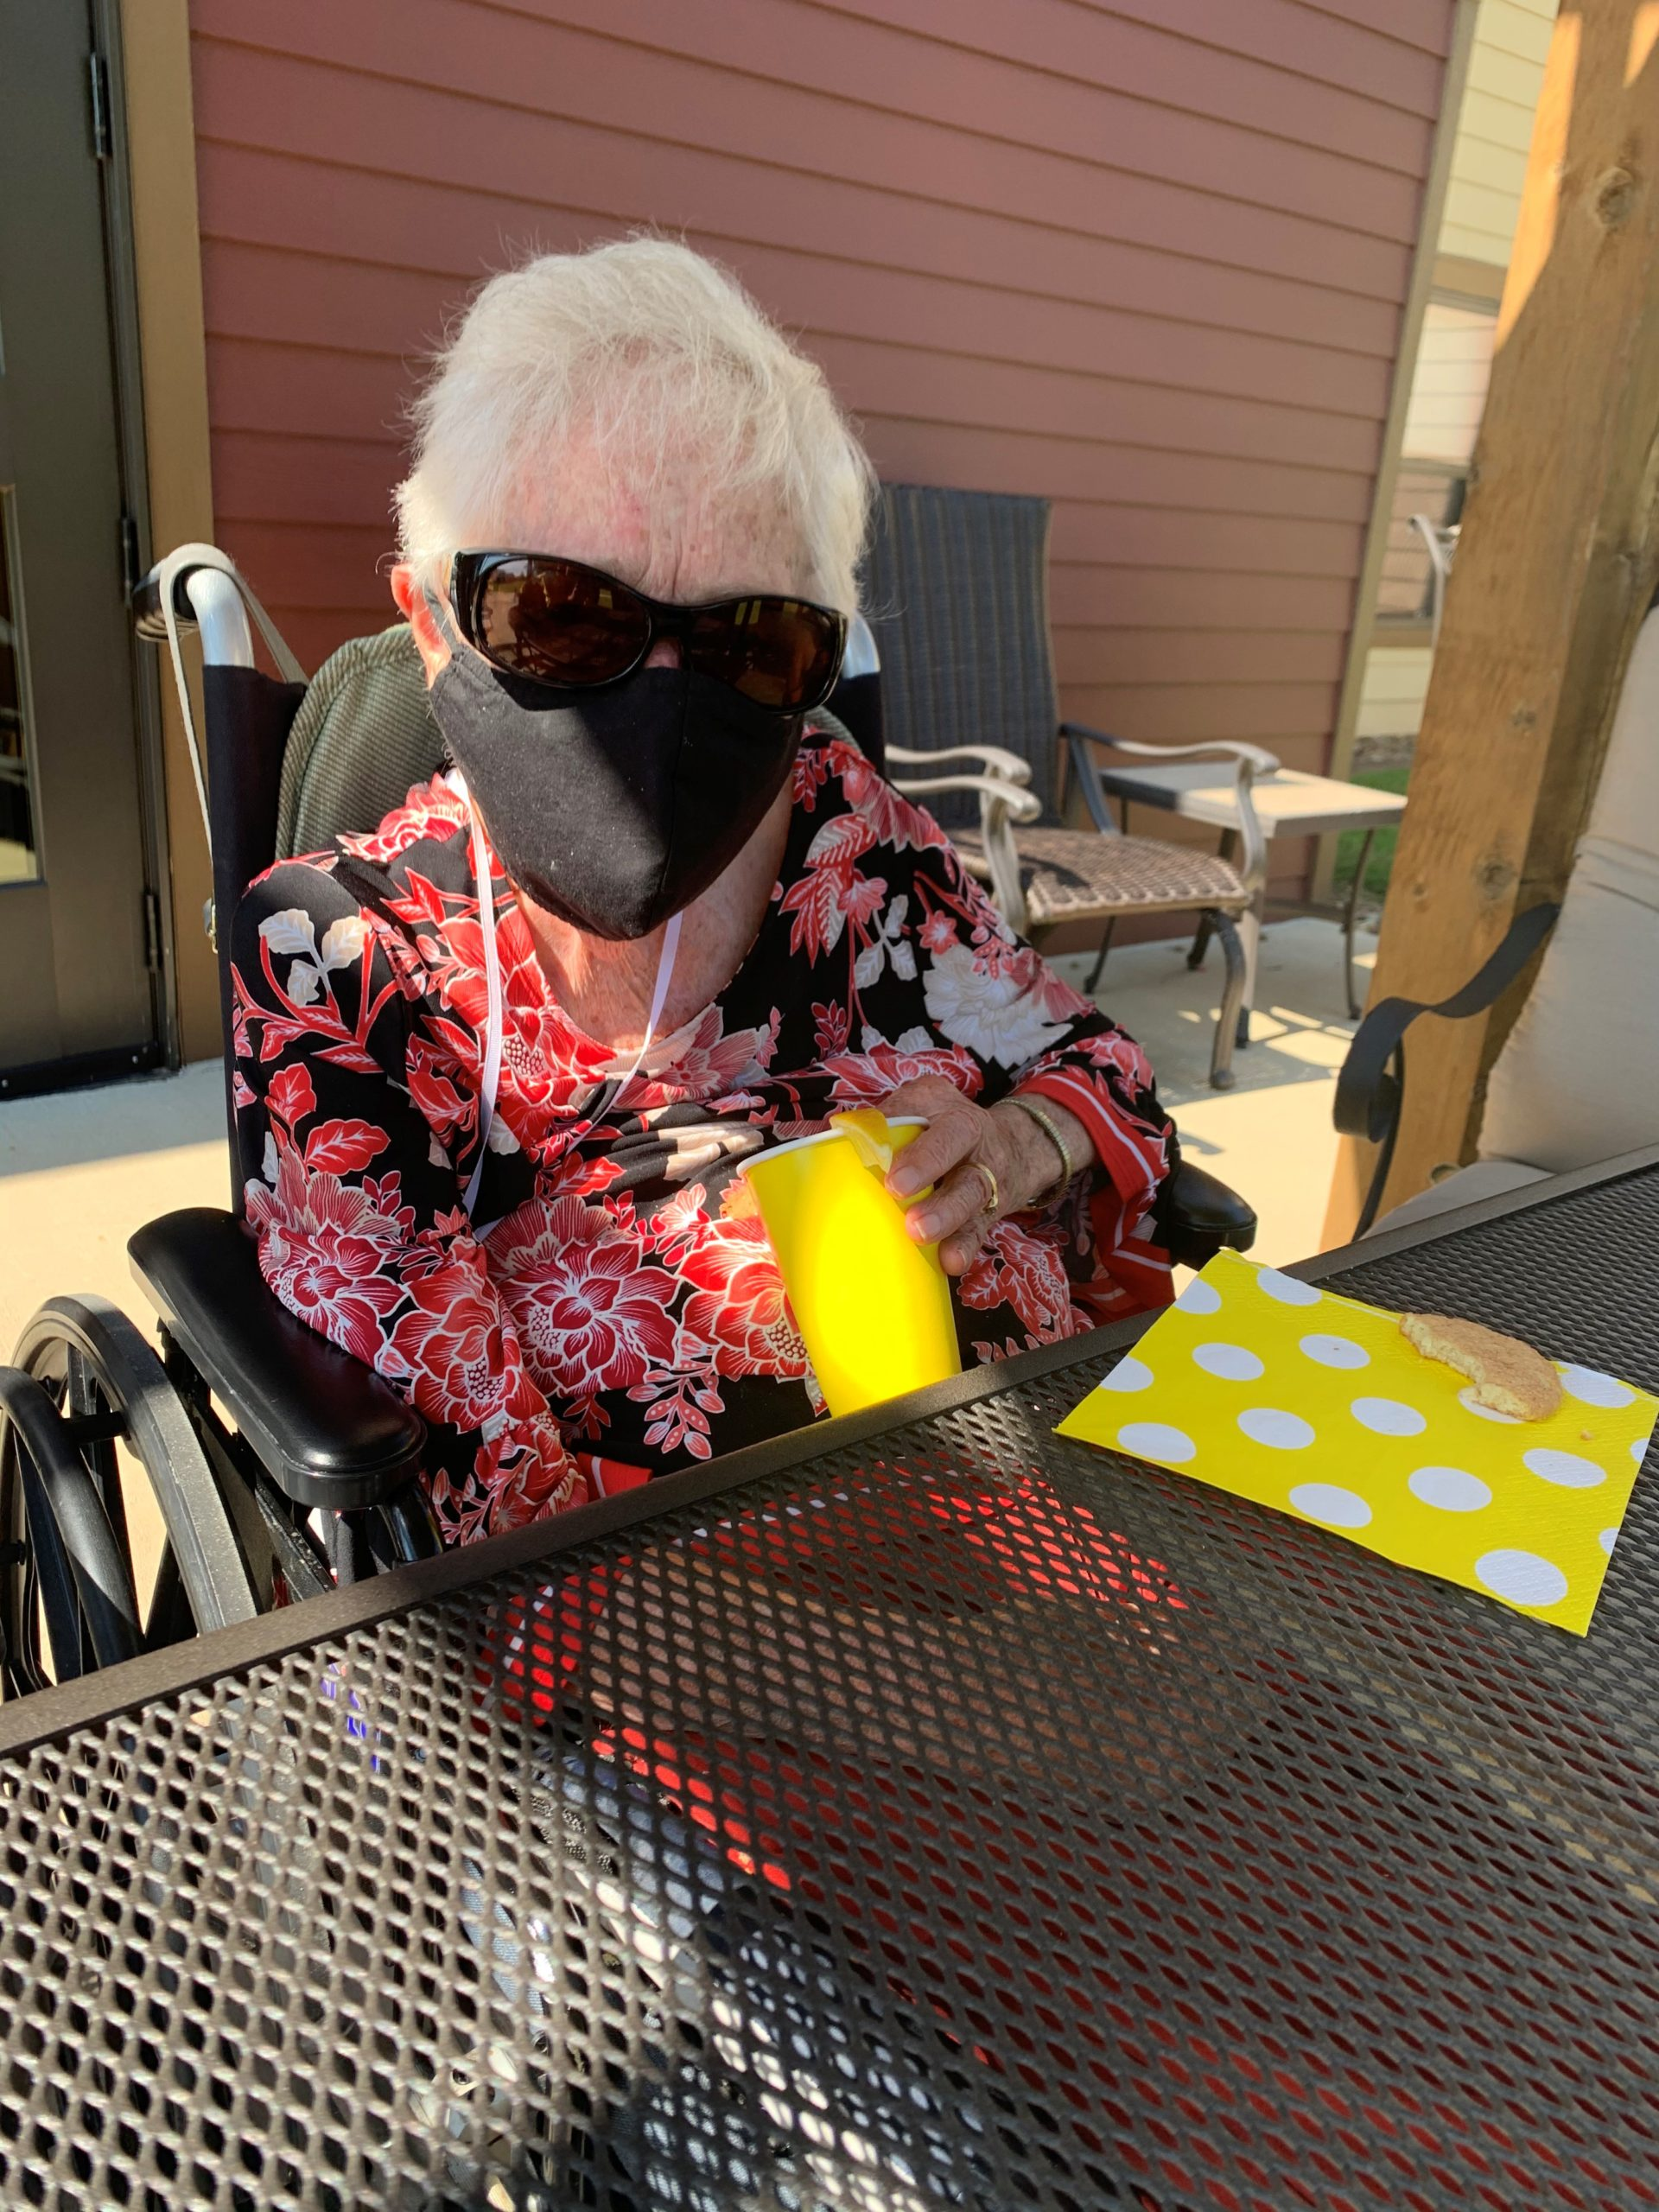 Harriet is visited by a weekly surprise cart that had a Sunshine Theme! Residents were treated to Lemonade Frostys, Fresh Pineapple, Lemon Cake, Snickerdoodle Cookies, and Fun Sunshine Songs!